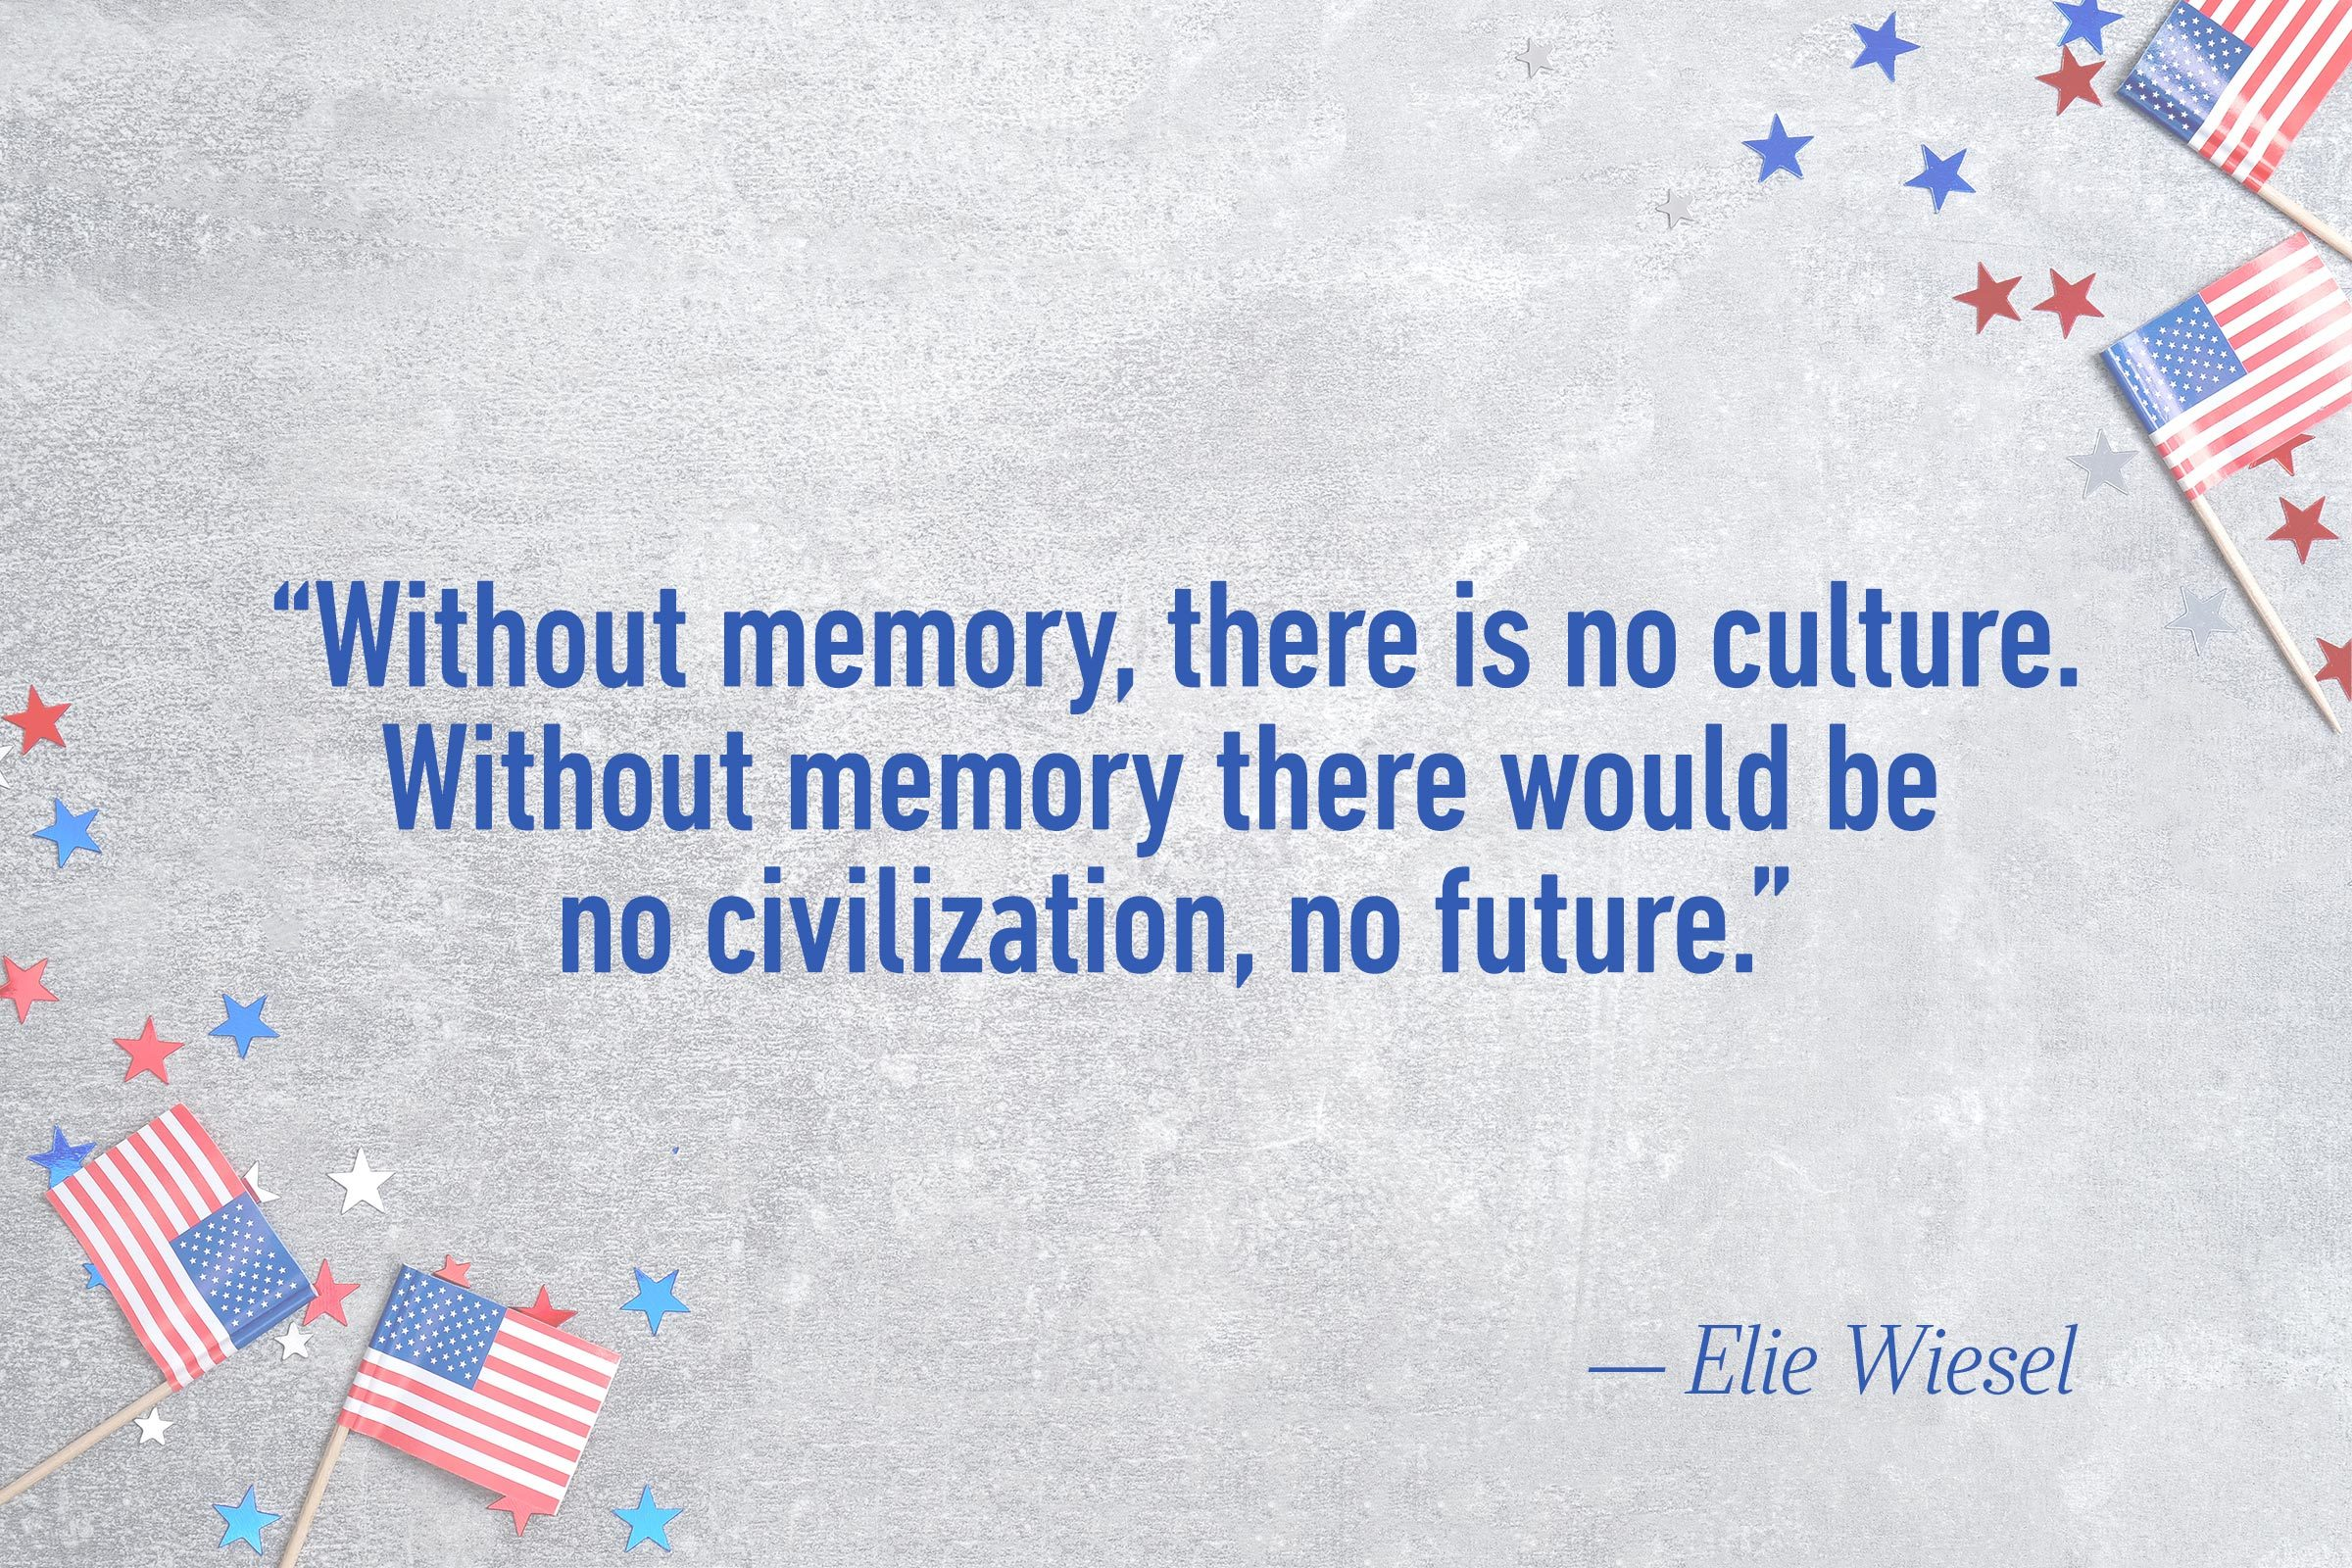 """Without memory, there is no culture. Without memory there would be no civilization, no future.""—Elie Wiesel"